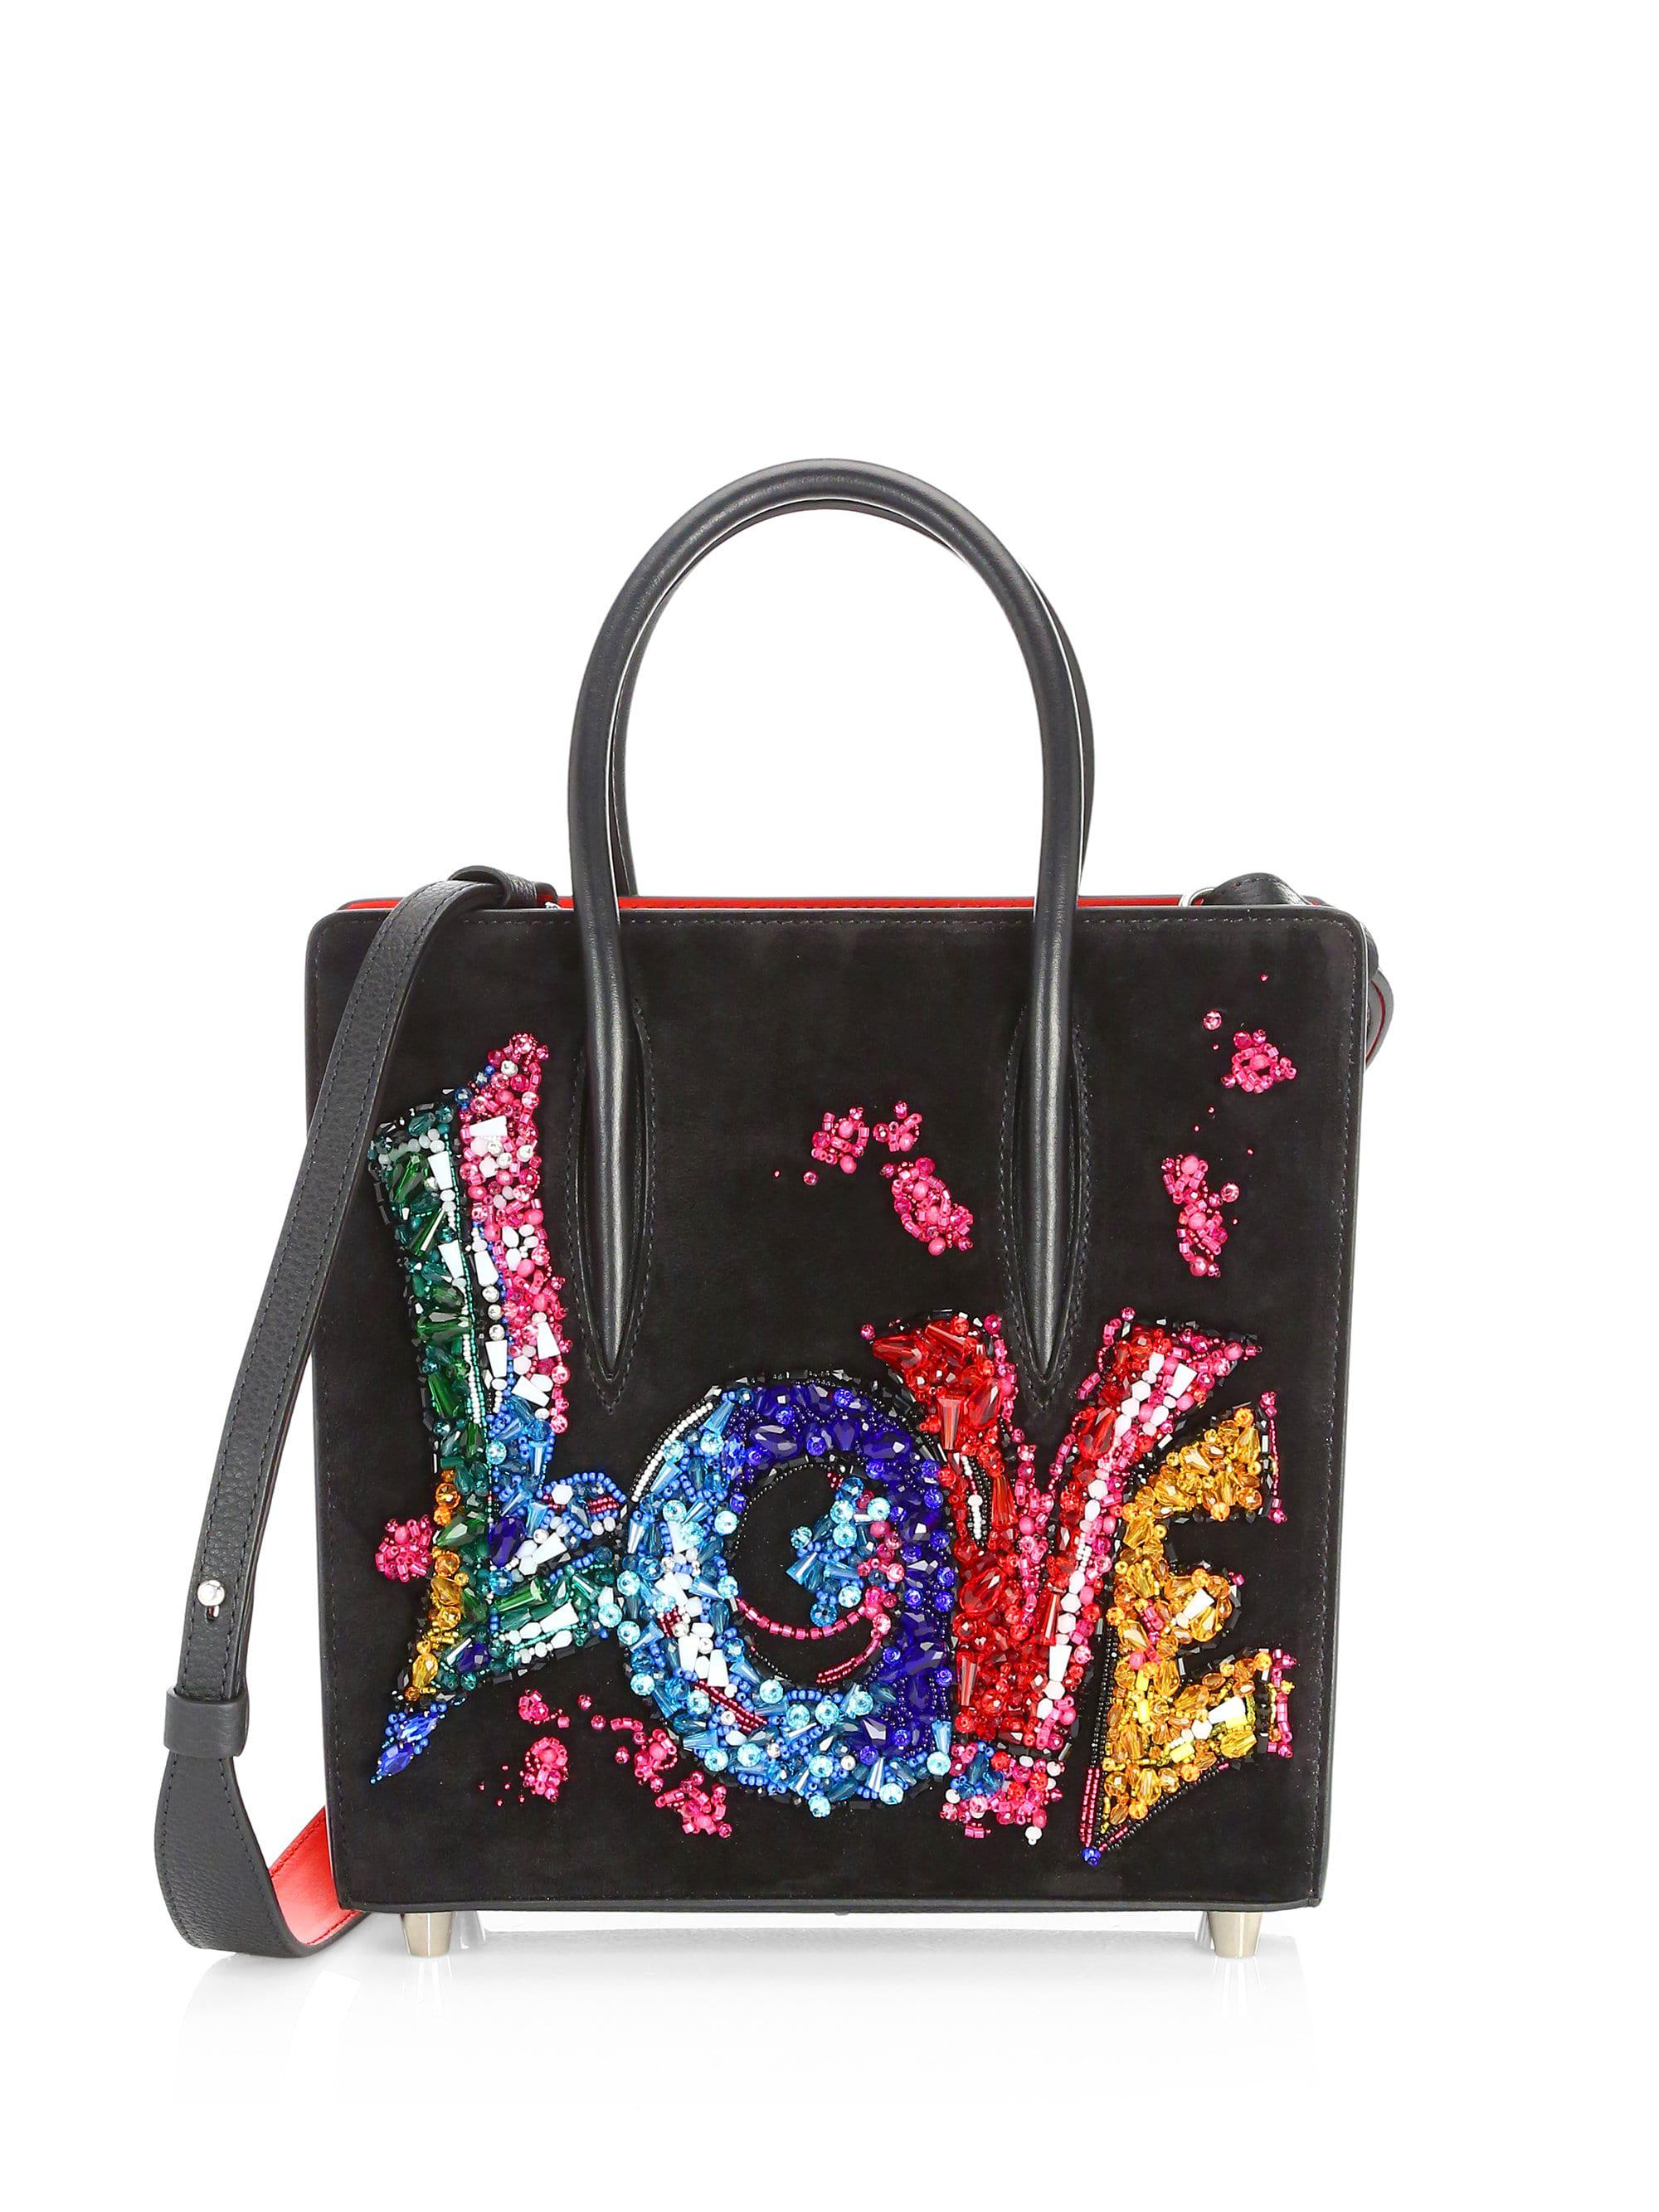 0ff194ba585 Christian Louboutin Paloma Suede Embroidered Love Shoulder Bag in ...